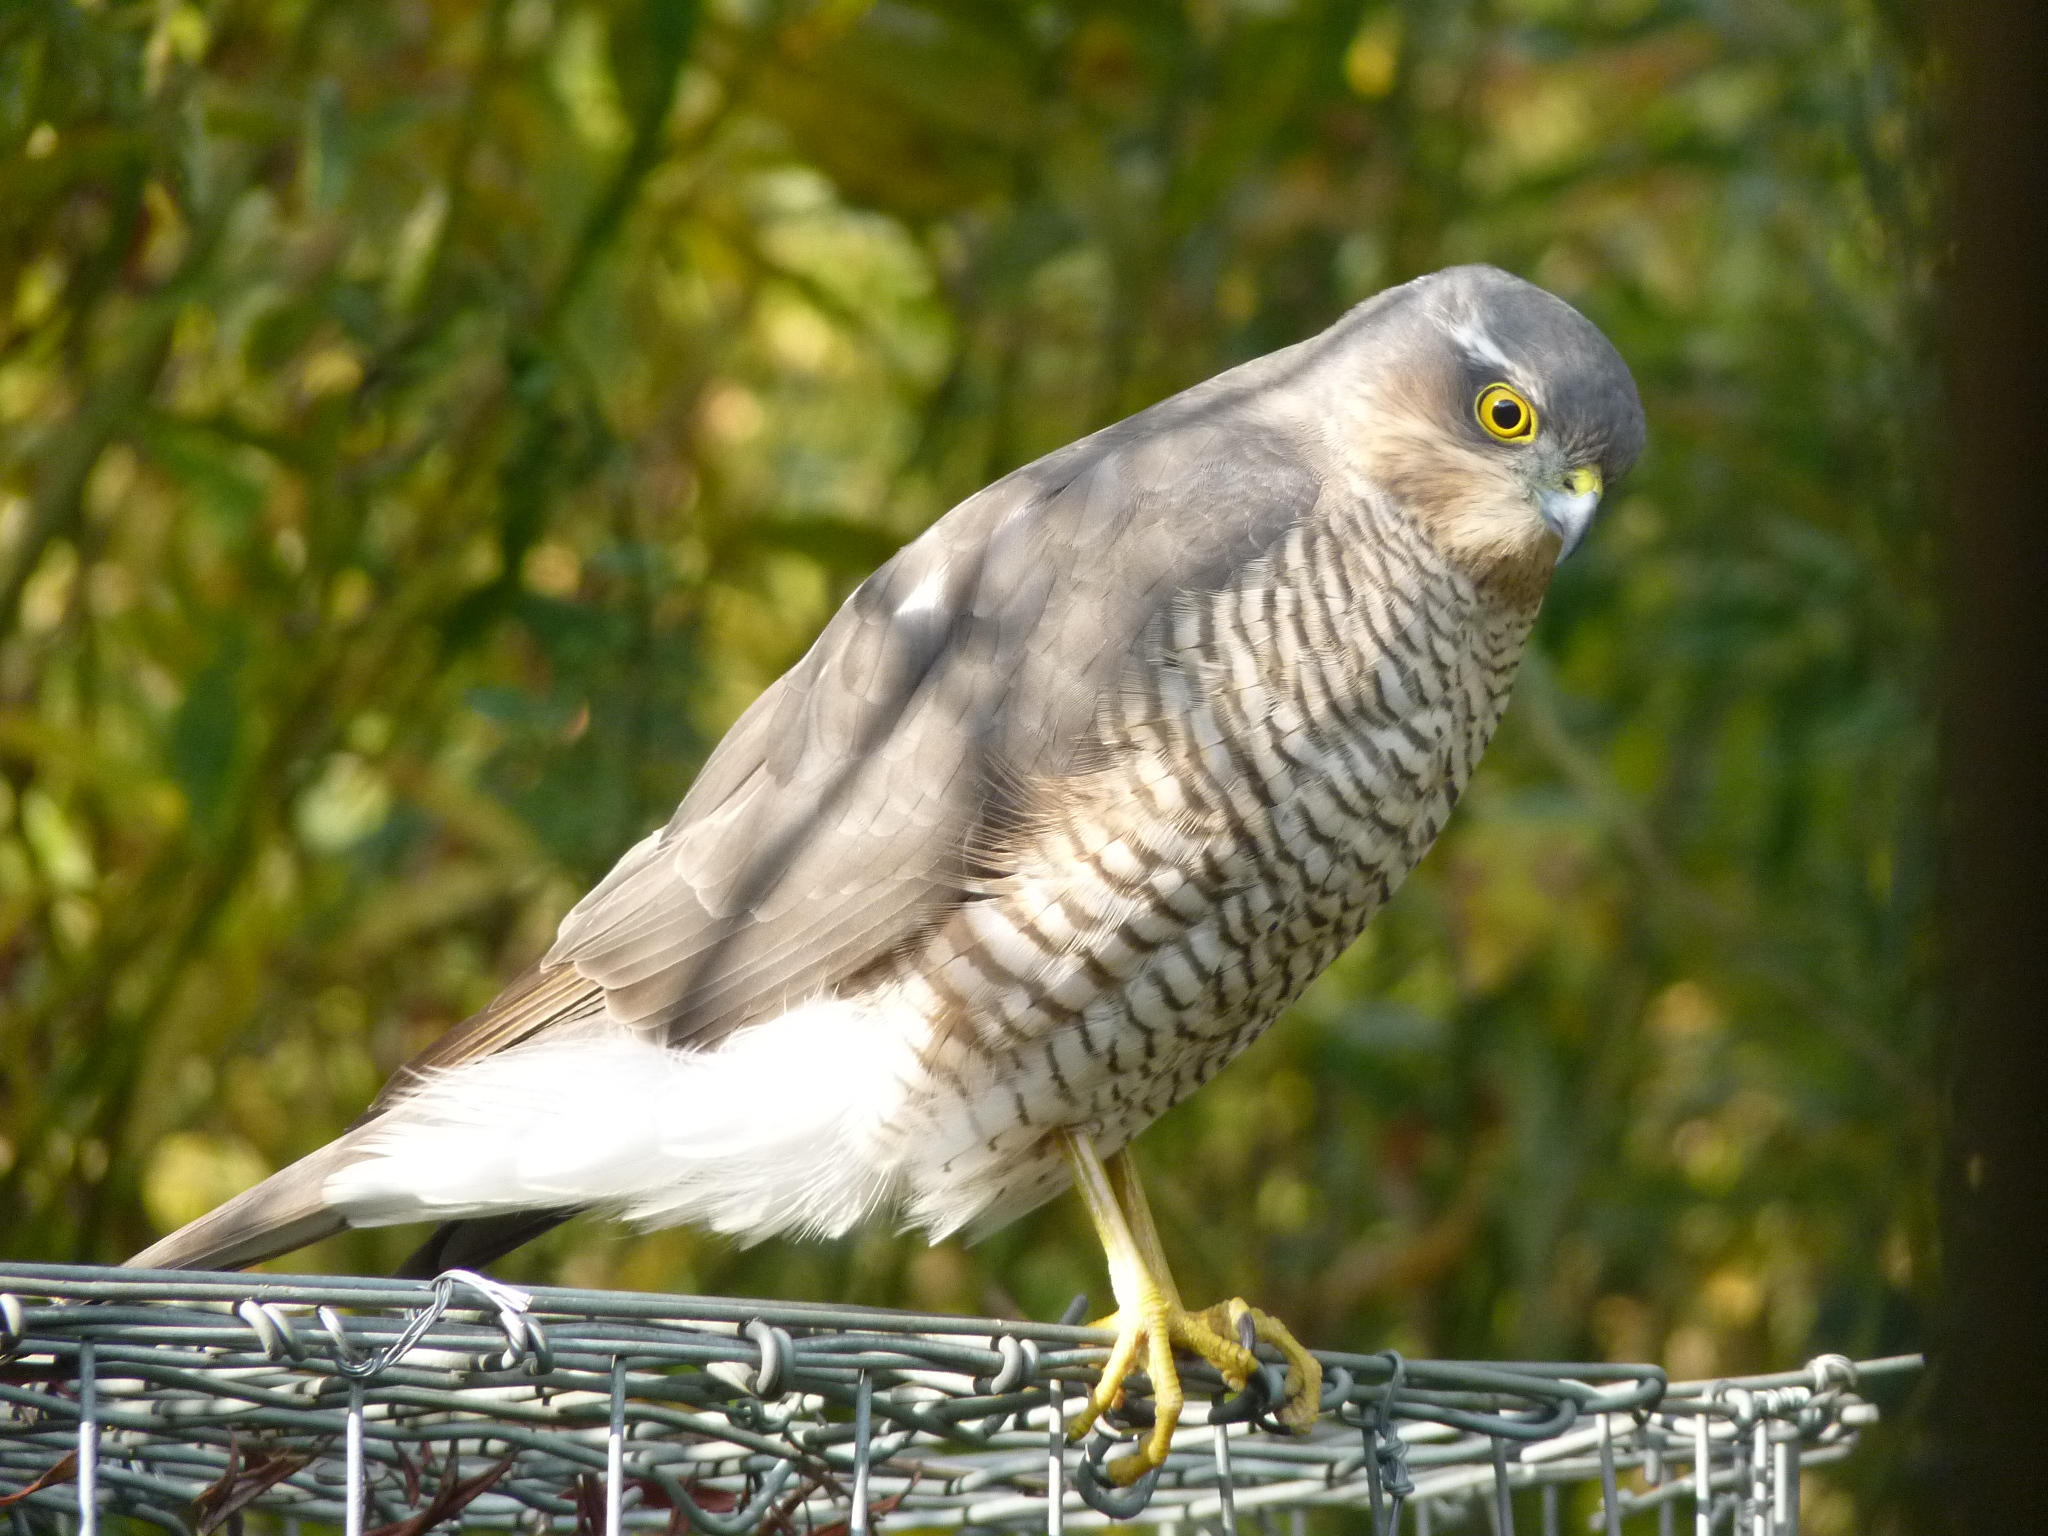 Sparrowhawk - yes really, that close!